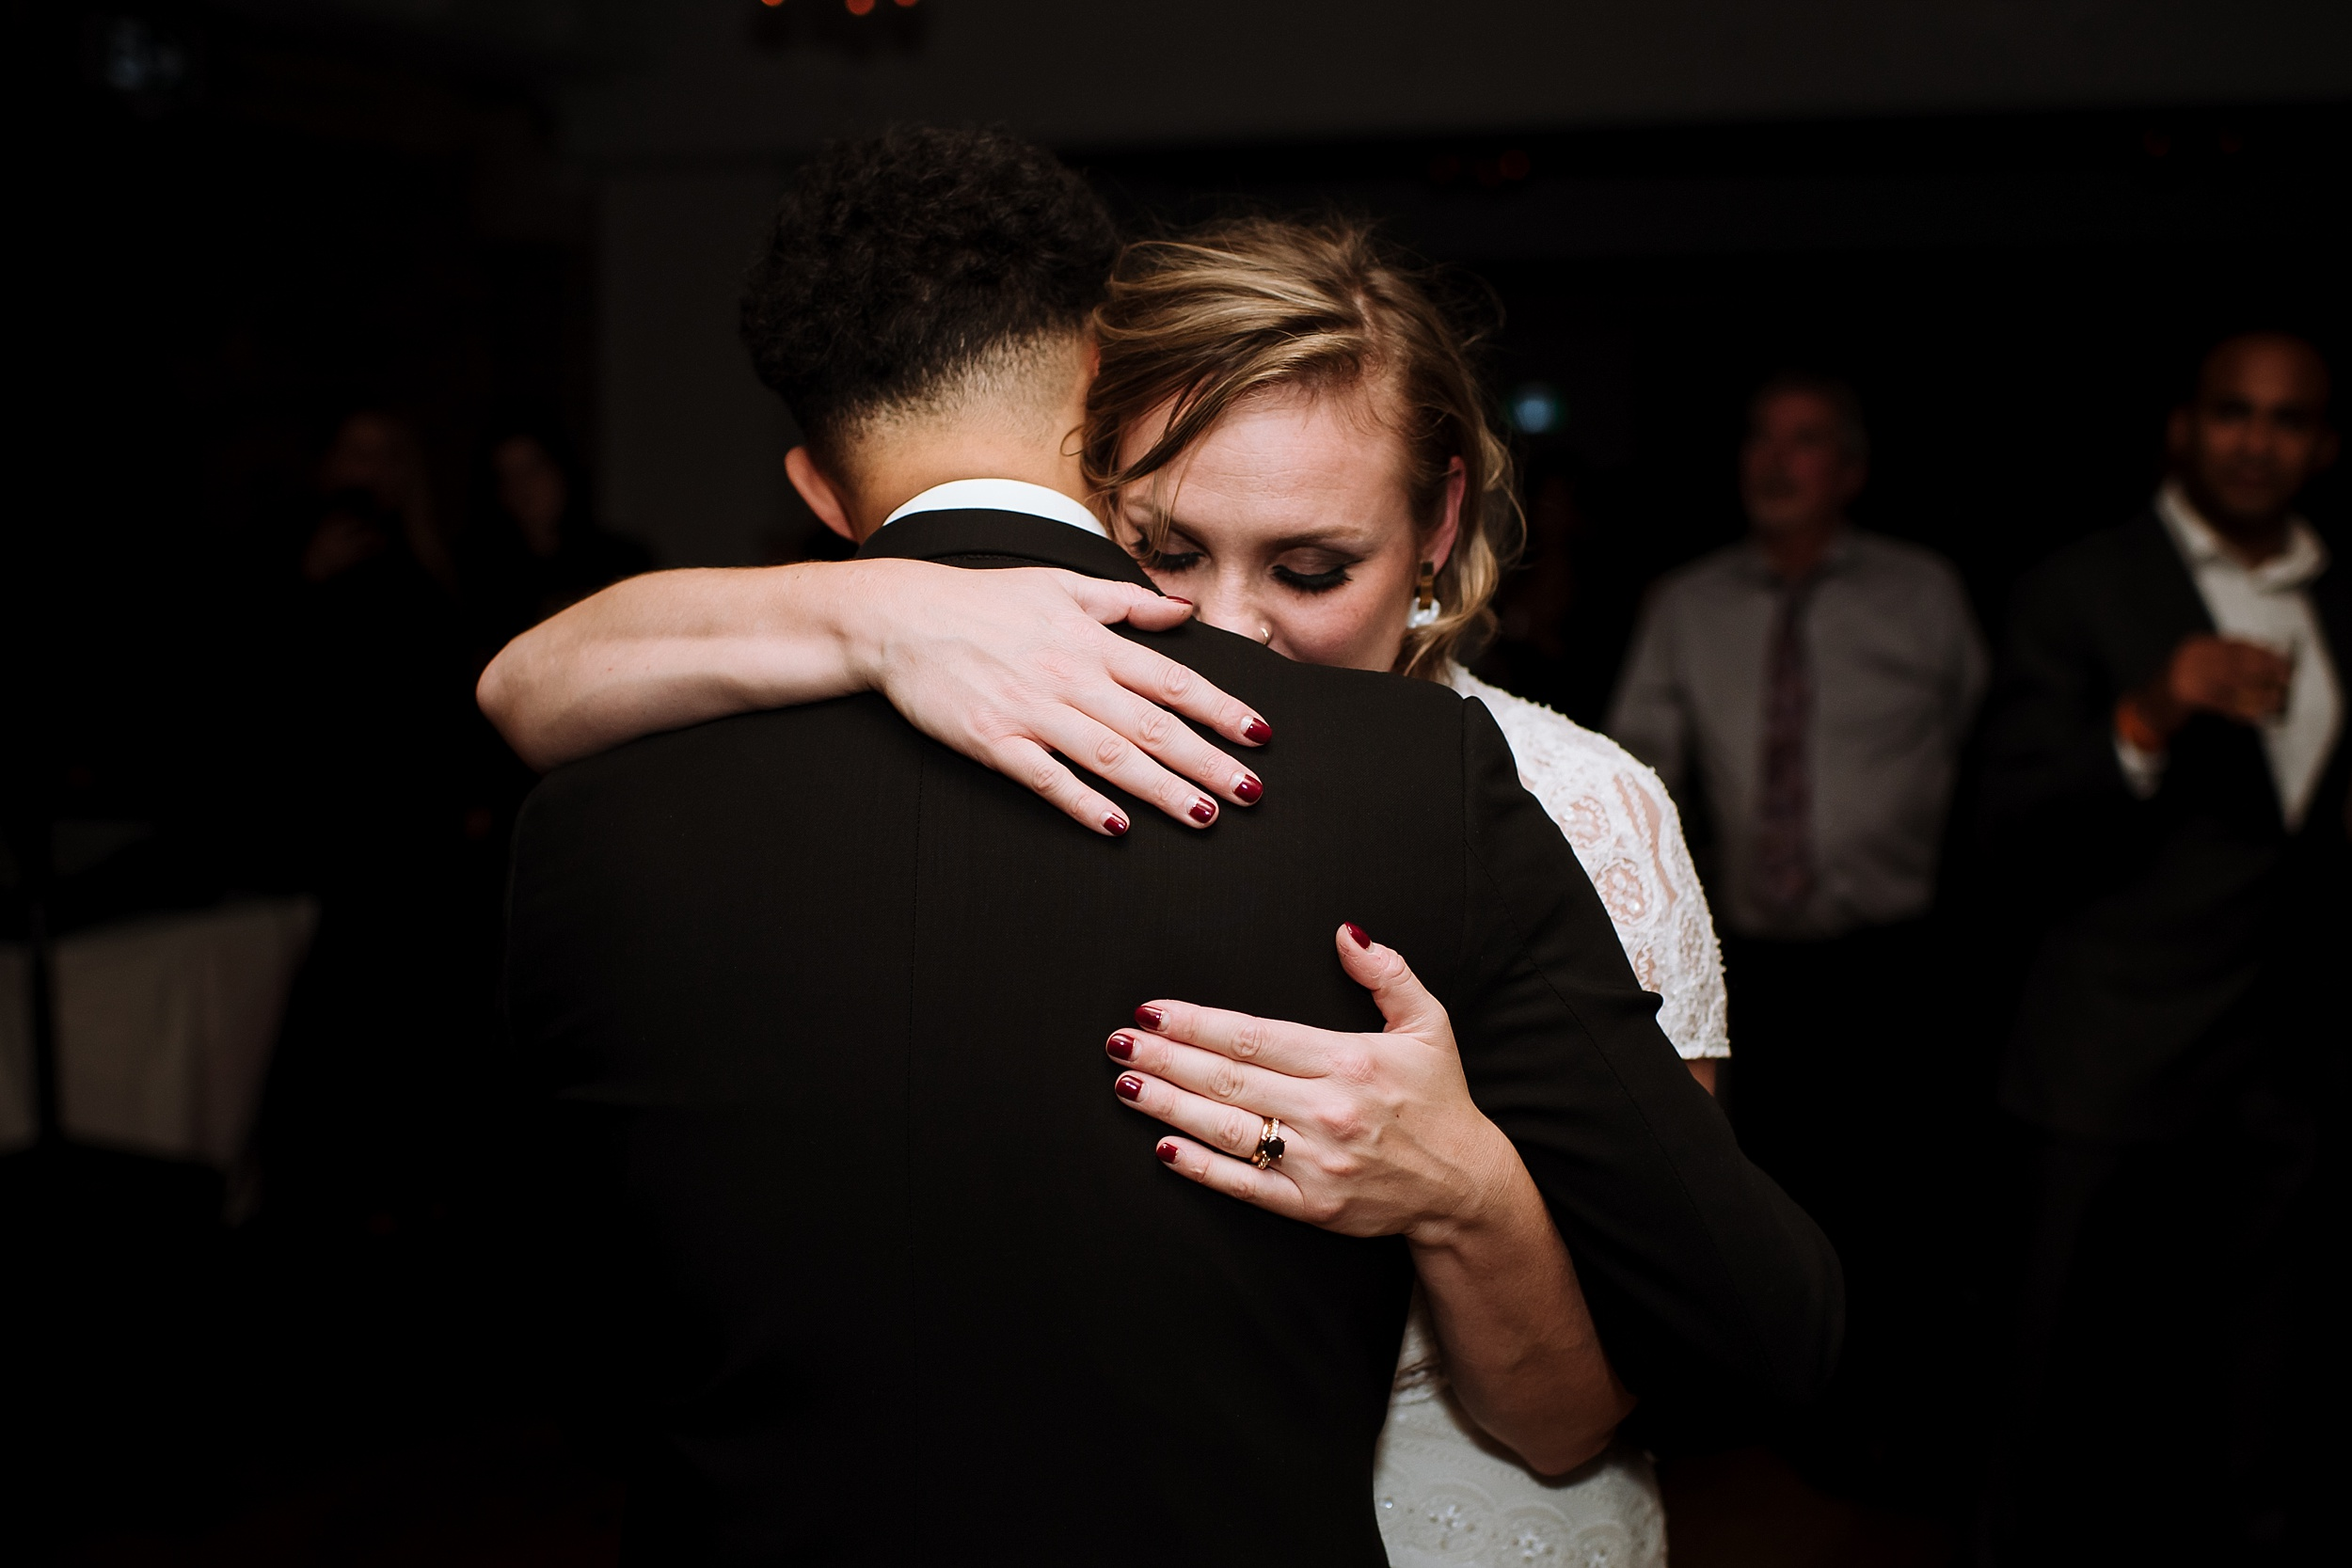 Broadview_Hotel_Wedding_Toronto_Photographer_0053.jpg